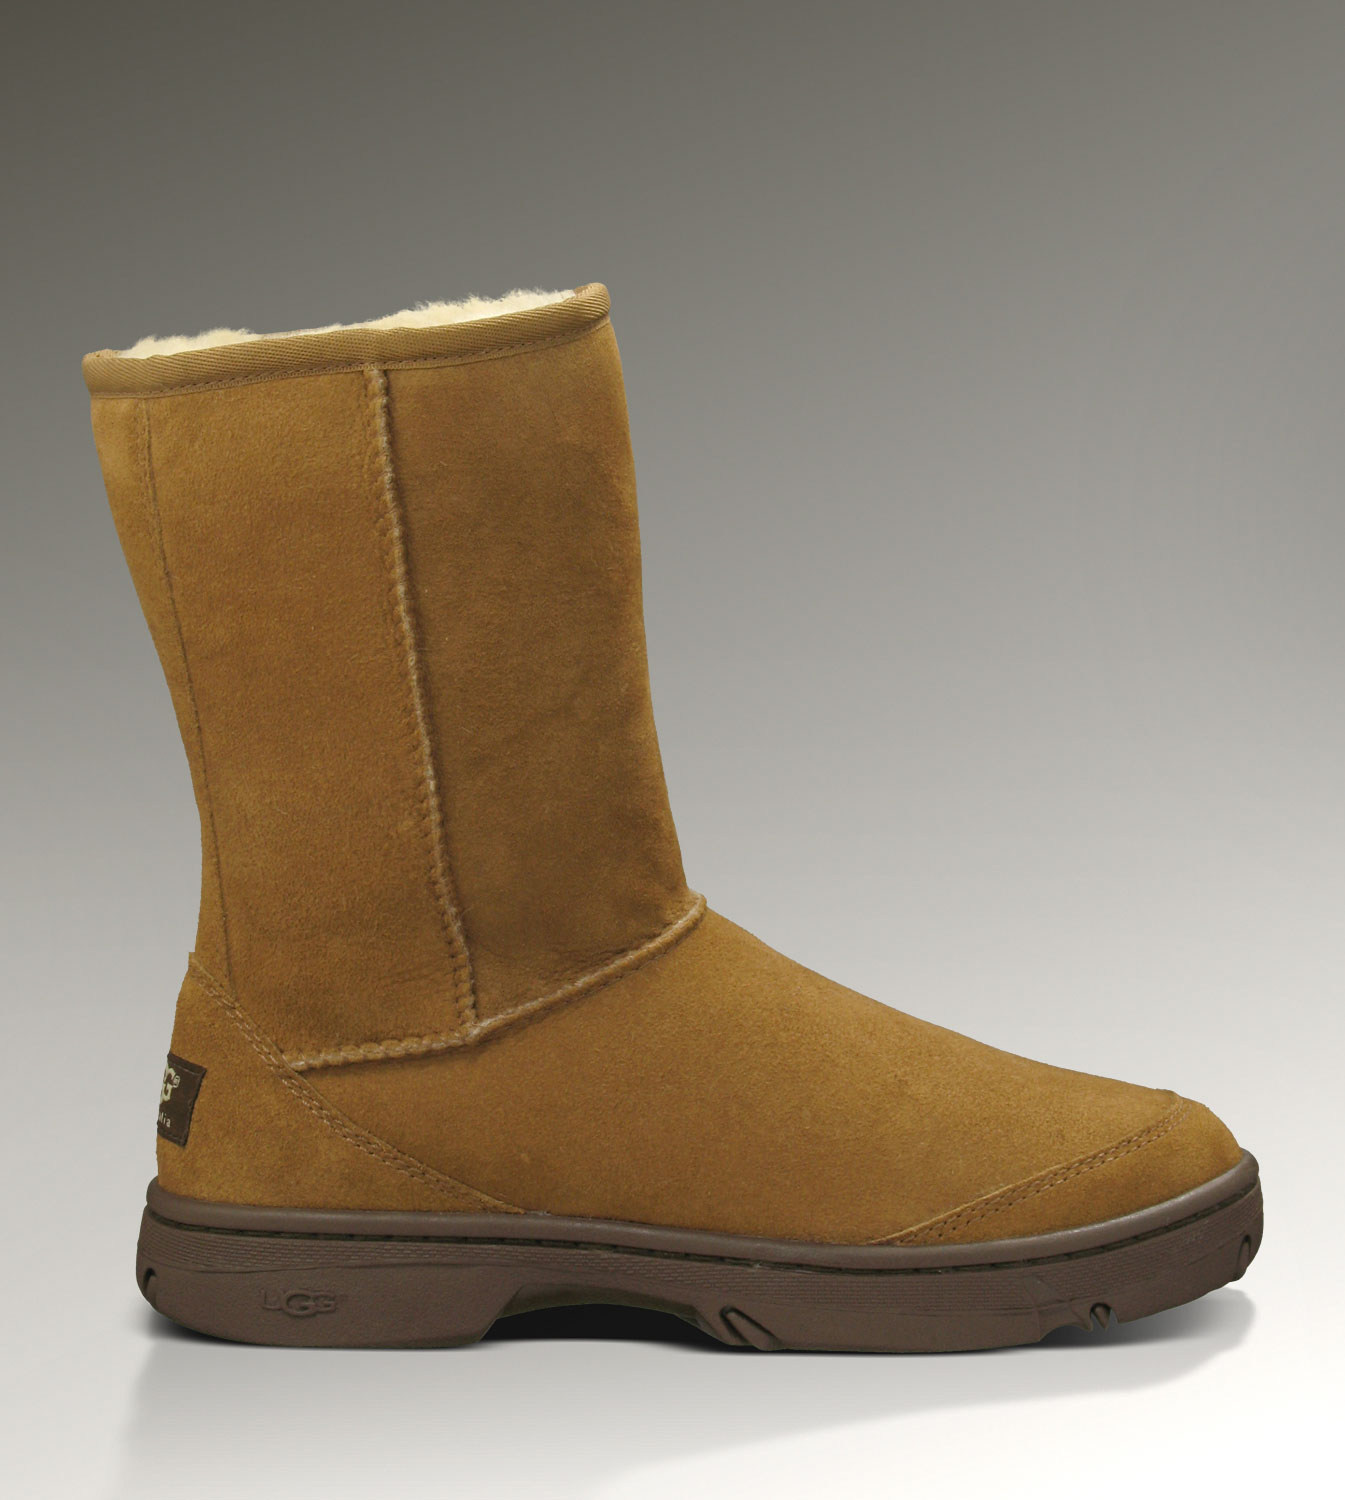 UGG Ultimate Short 5275 Chestnut Boots